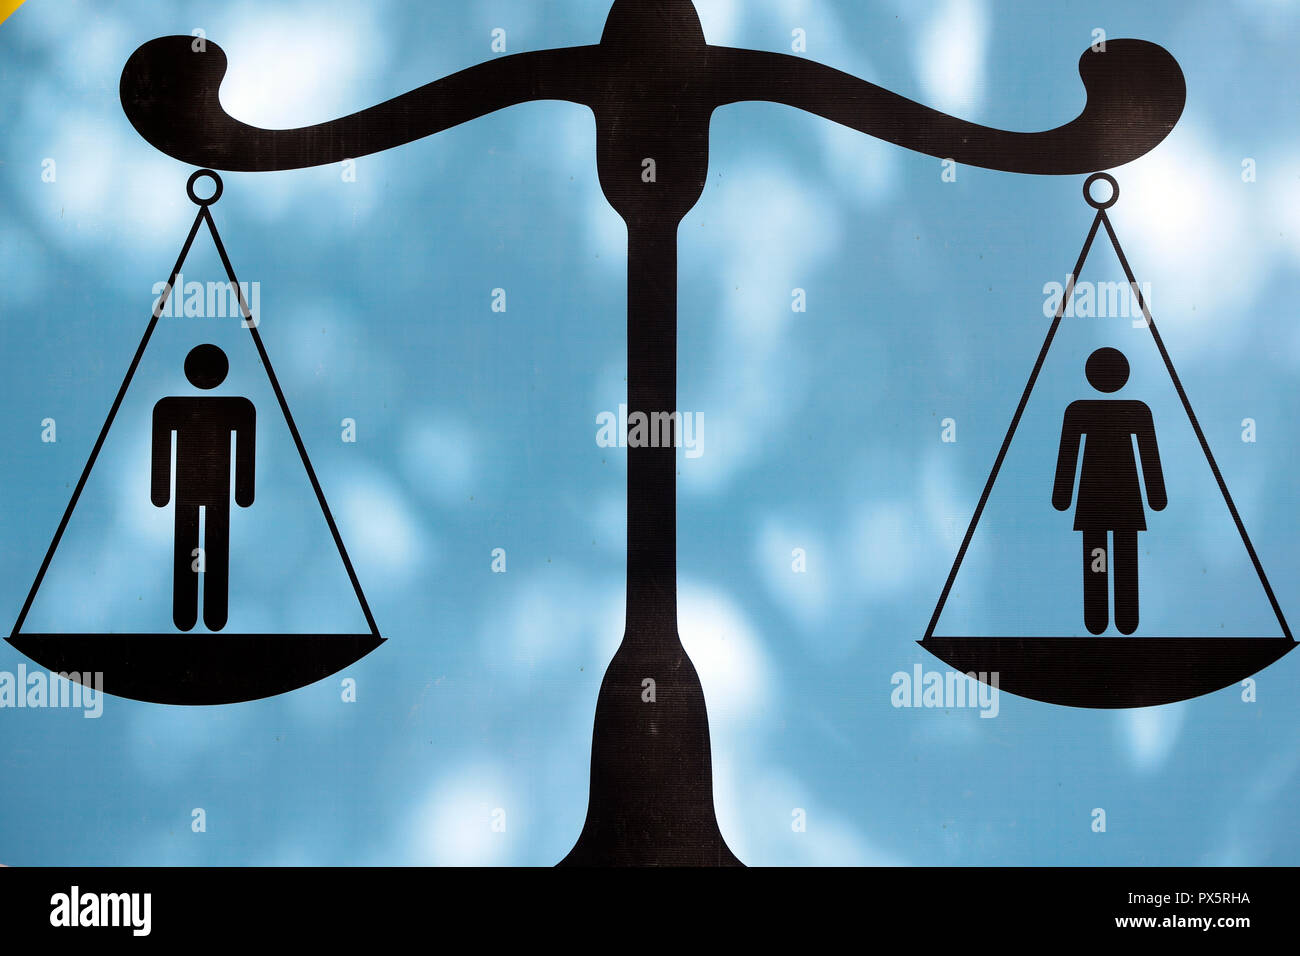 Male and female figures on scale. Gender equality.  Vung Tau. Vietnam. - Stock Image